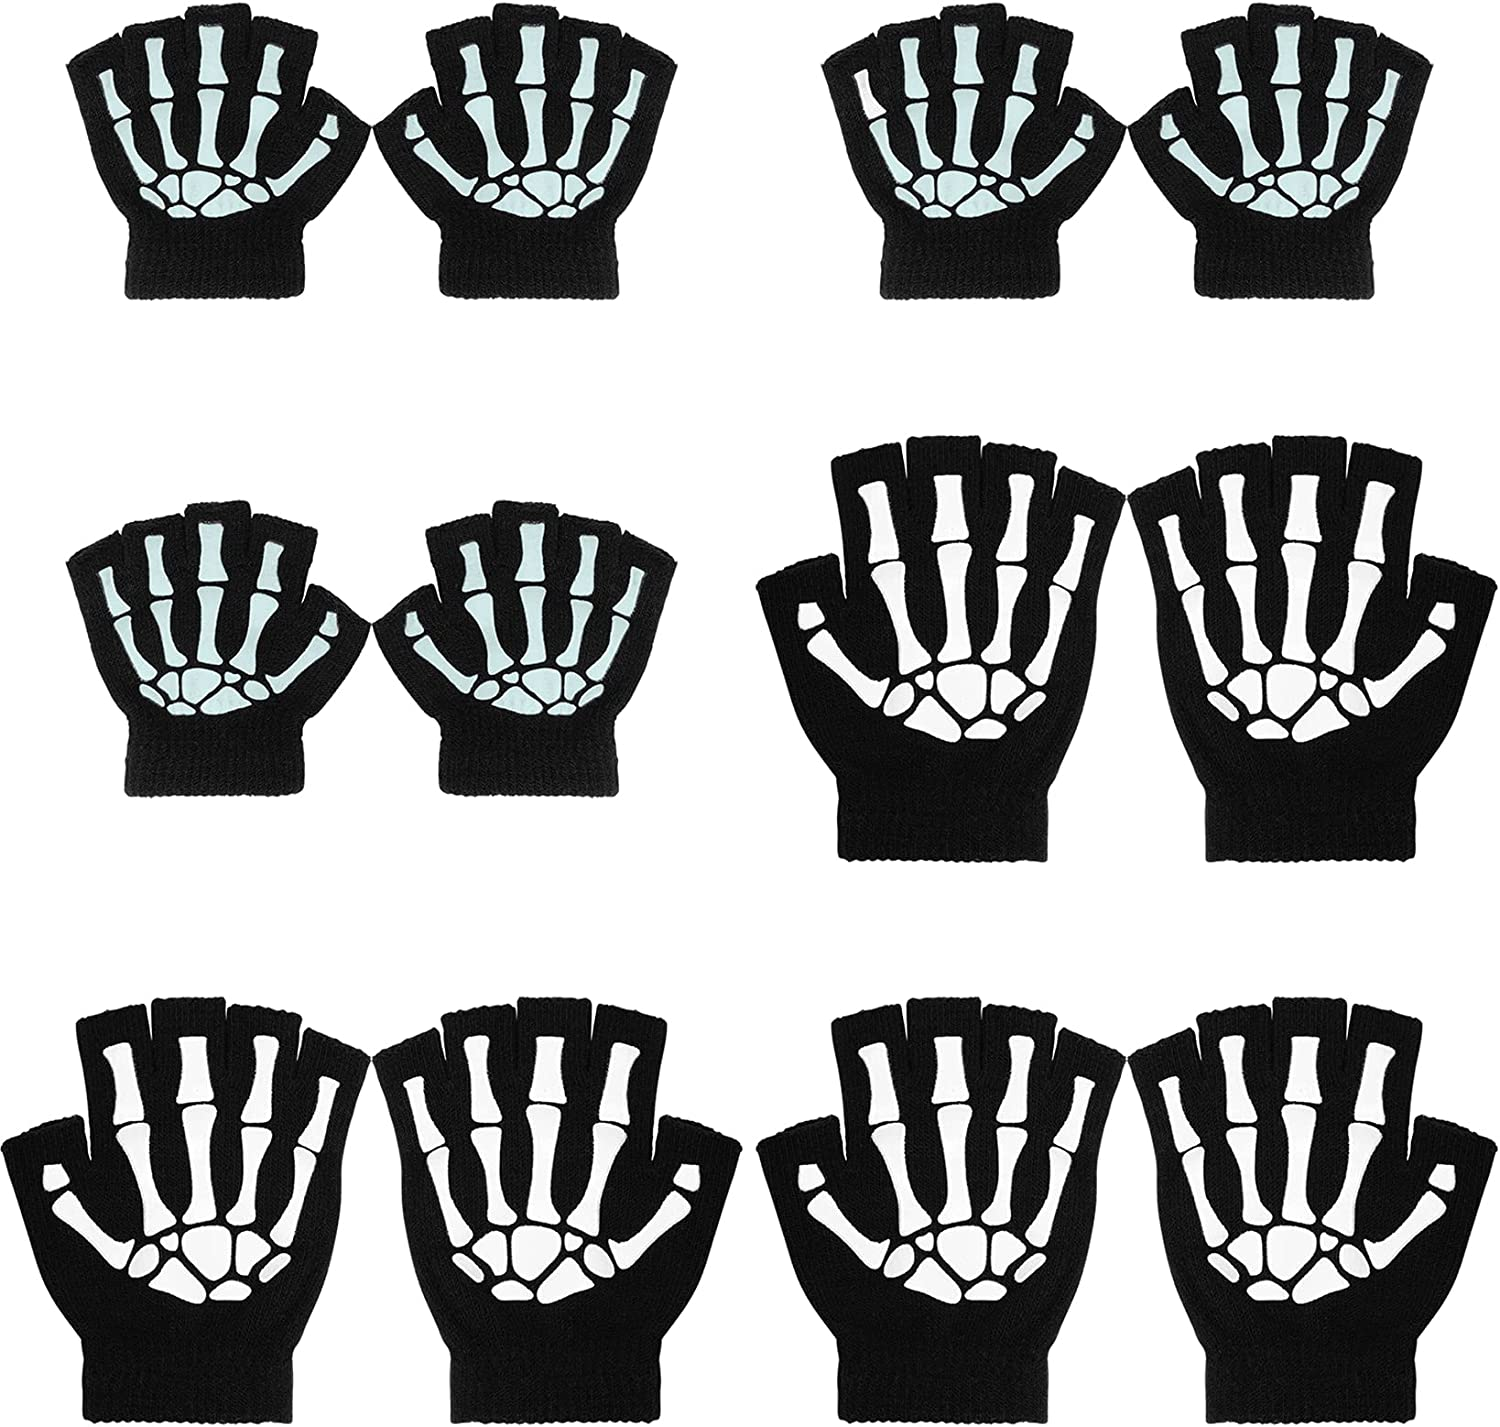 Tongcloud 6 Pairs Unisex Stretchy Hand Warmer Skeleton Knit Glow in The Dark for Adult and Kids